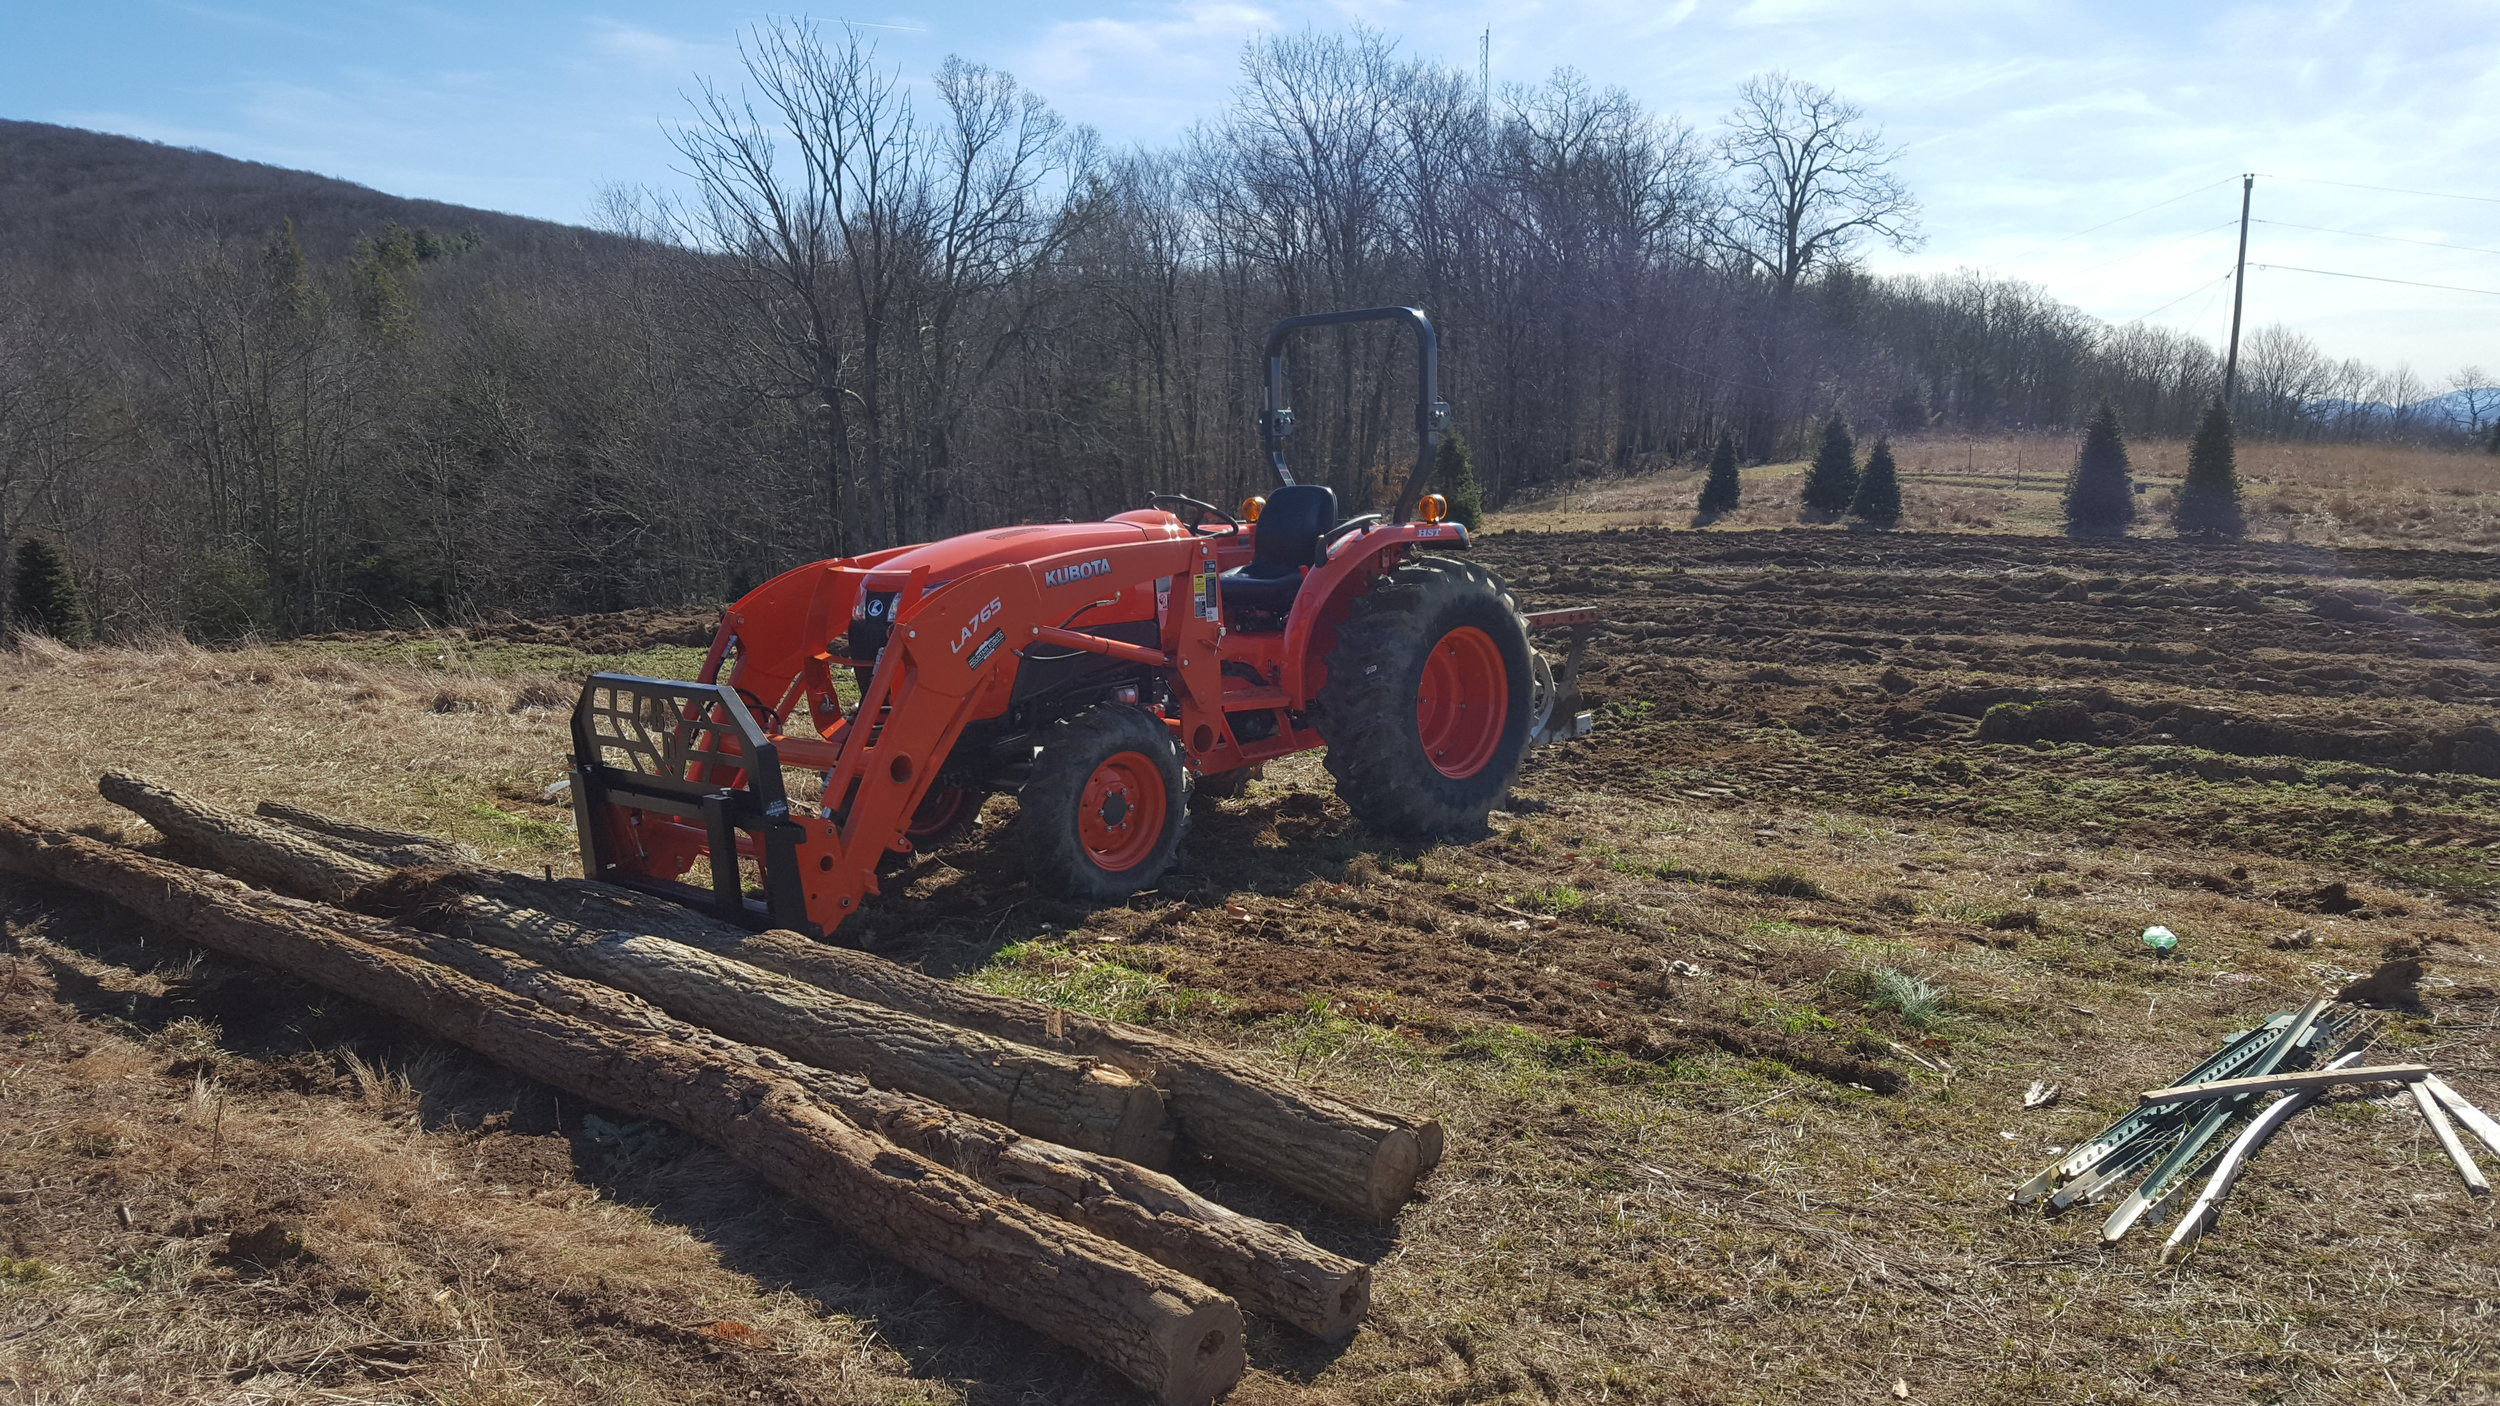 Our new tractor is really helping out thanks to the crew at Mountain Kobota in Boone!